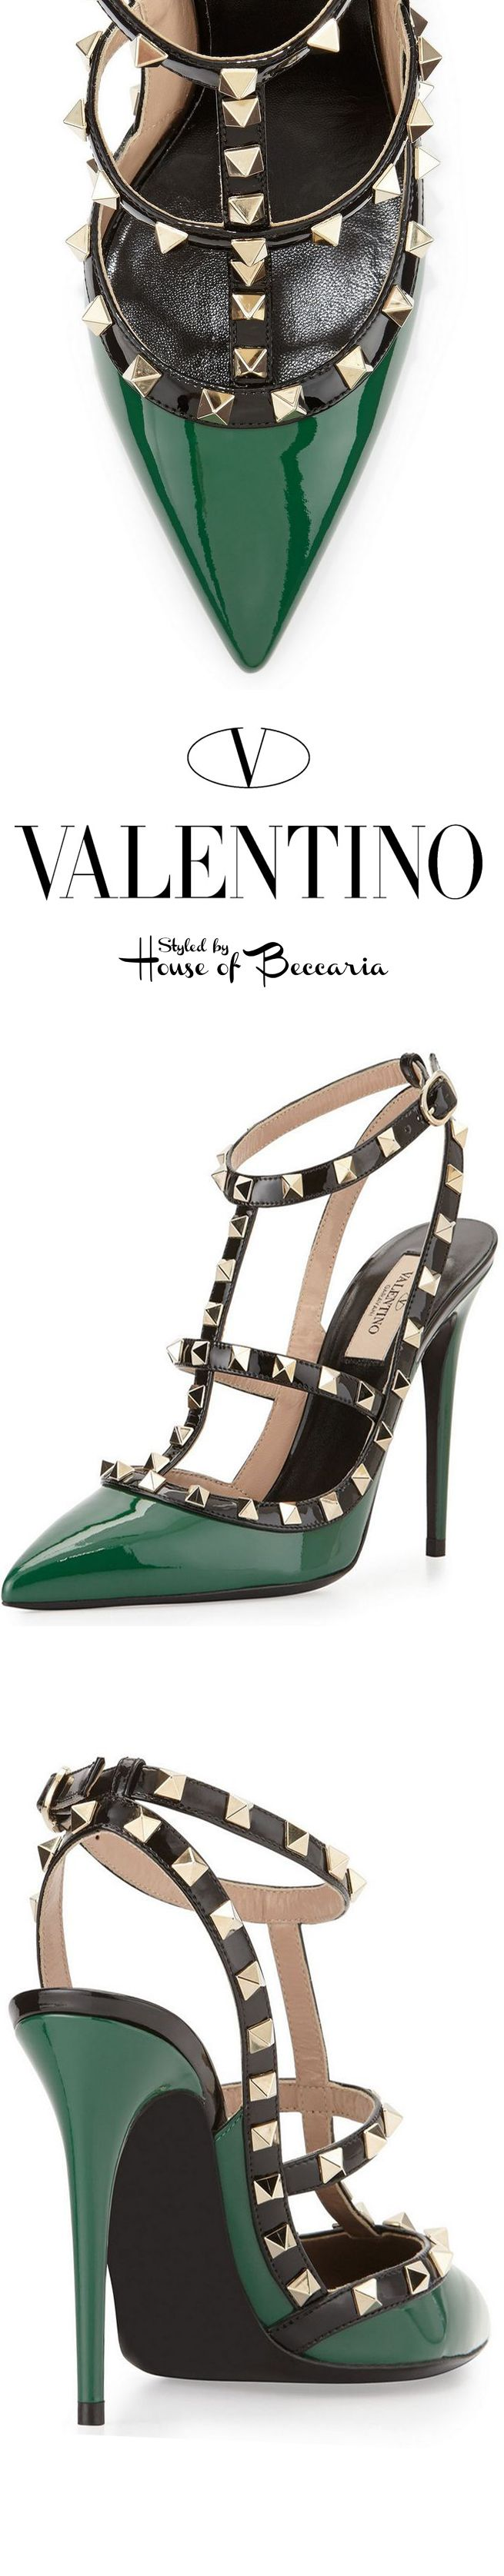 ~Valentino Rockstud Emerald Colorblock, Patent Leather Pump | House of Beccaria#